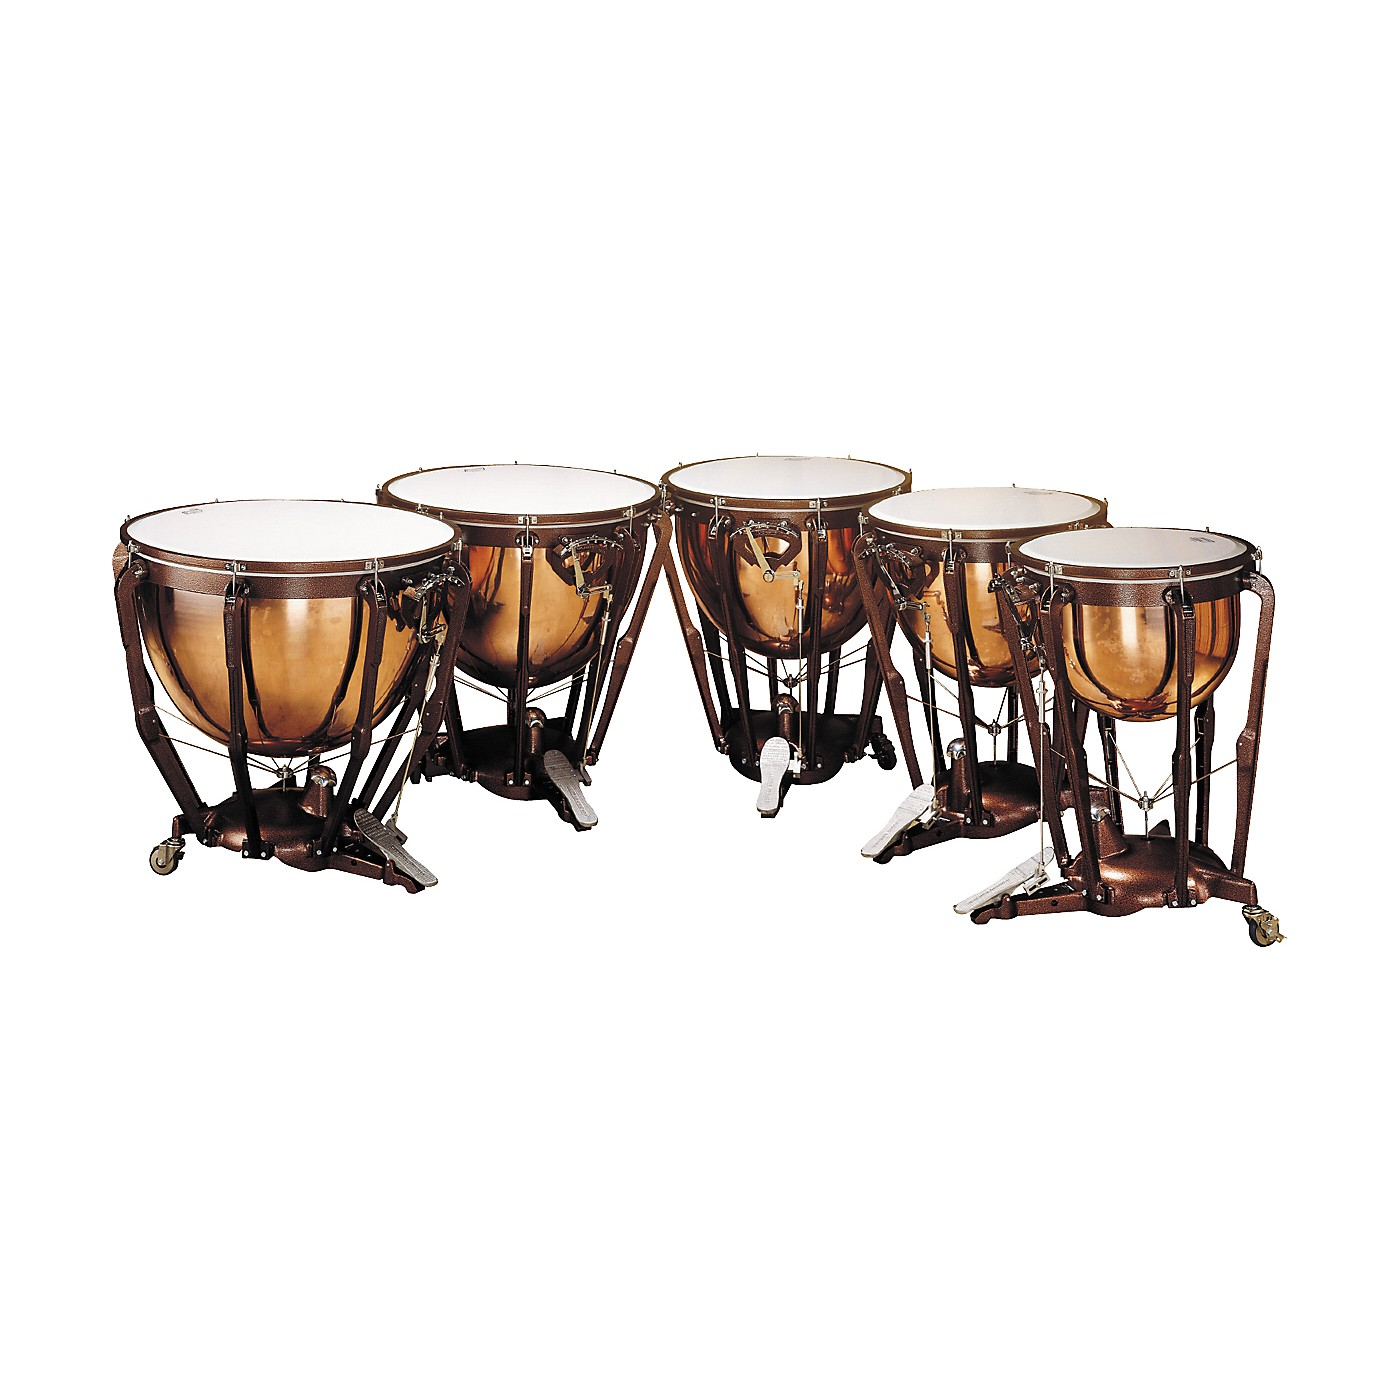 Ludwig Professional Polished Copper Timpani thumbnail